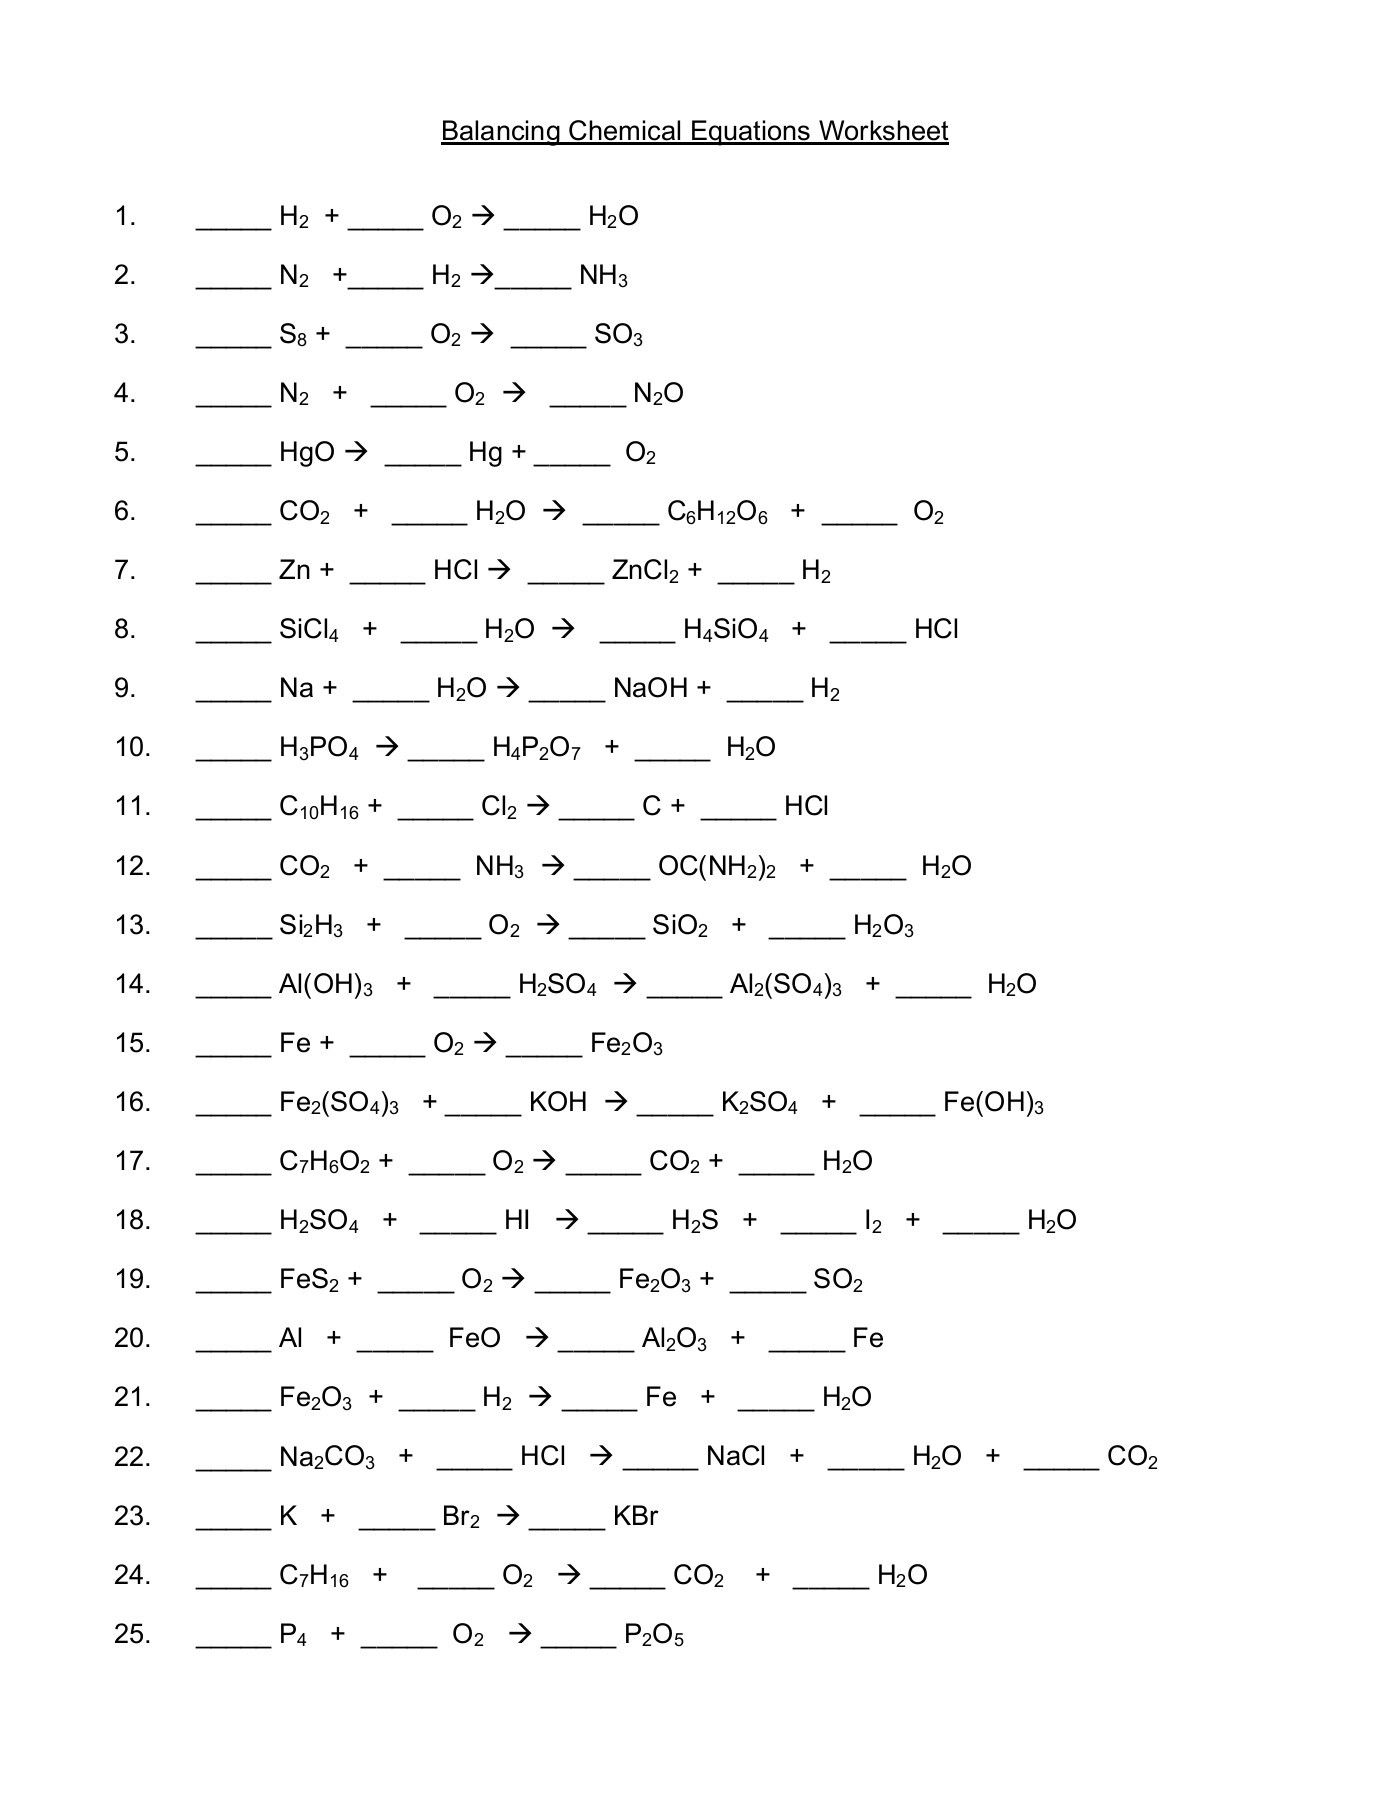 33 Clever Balancing Chemical Equations Worksheet Design En